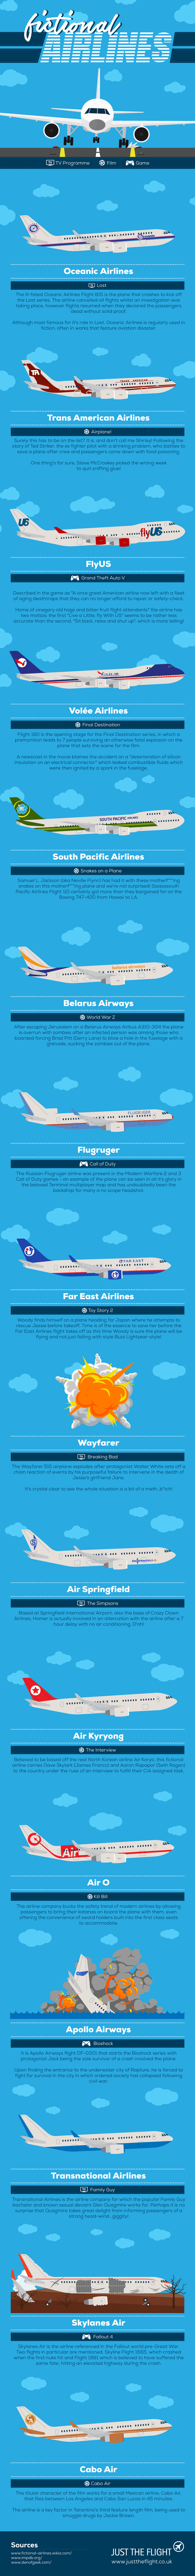 Fictional Airlines